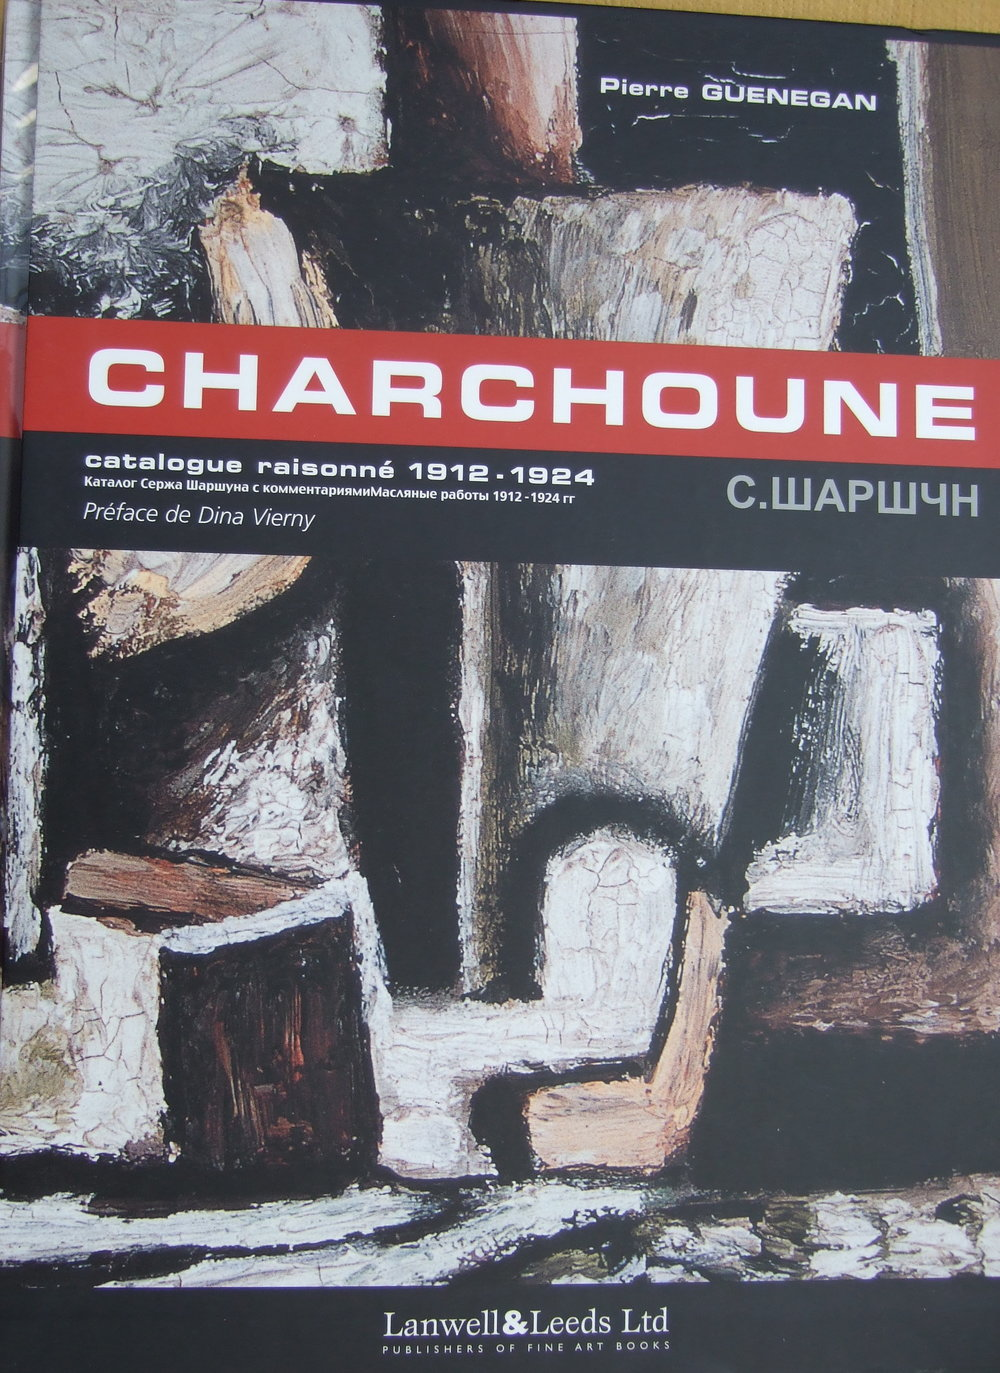 Charchoune Catalogue-raisonne 1912 - 1924 by Pierre Guenegan. Volume 1.